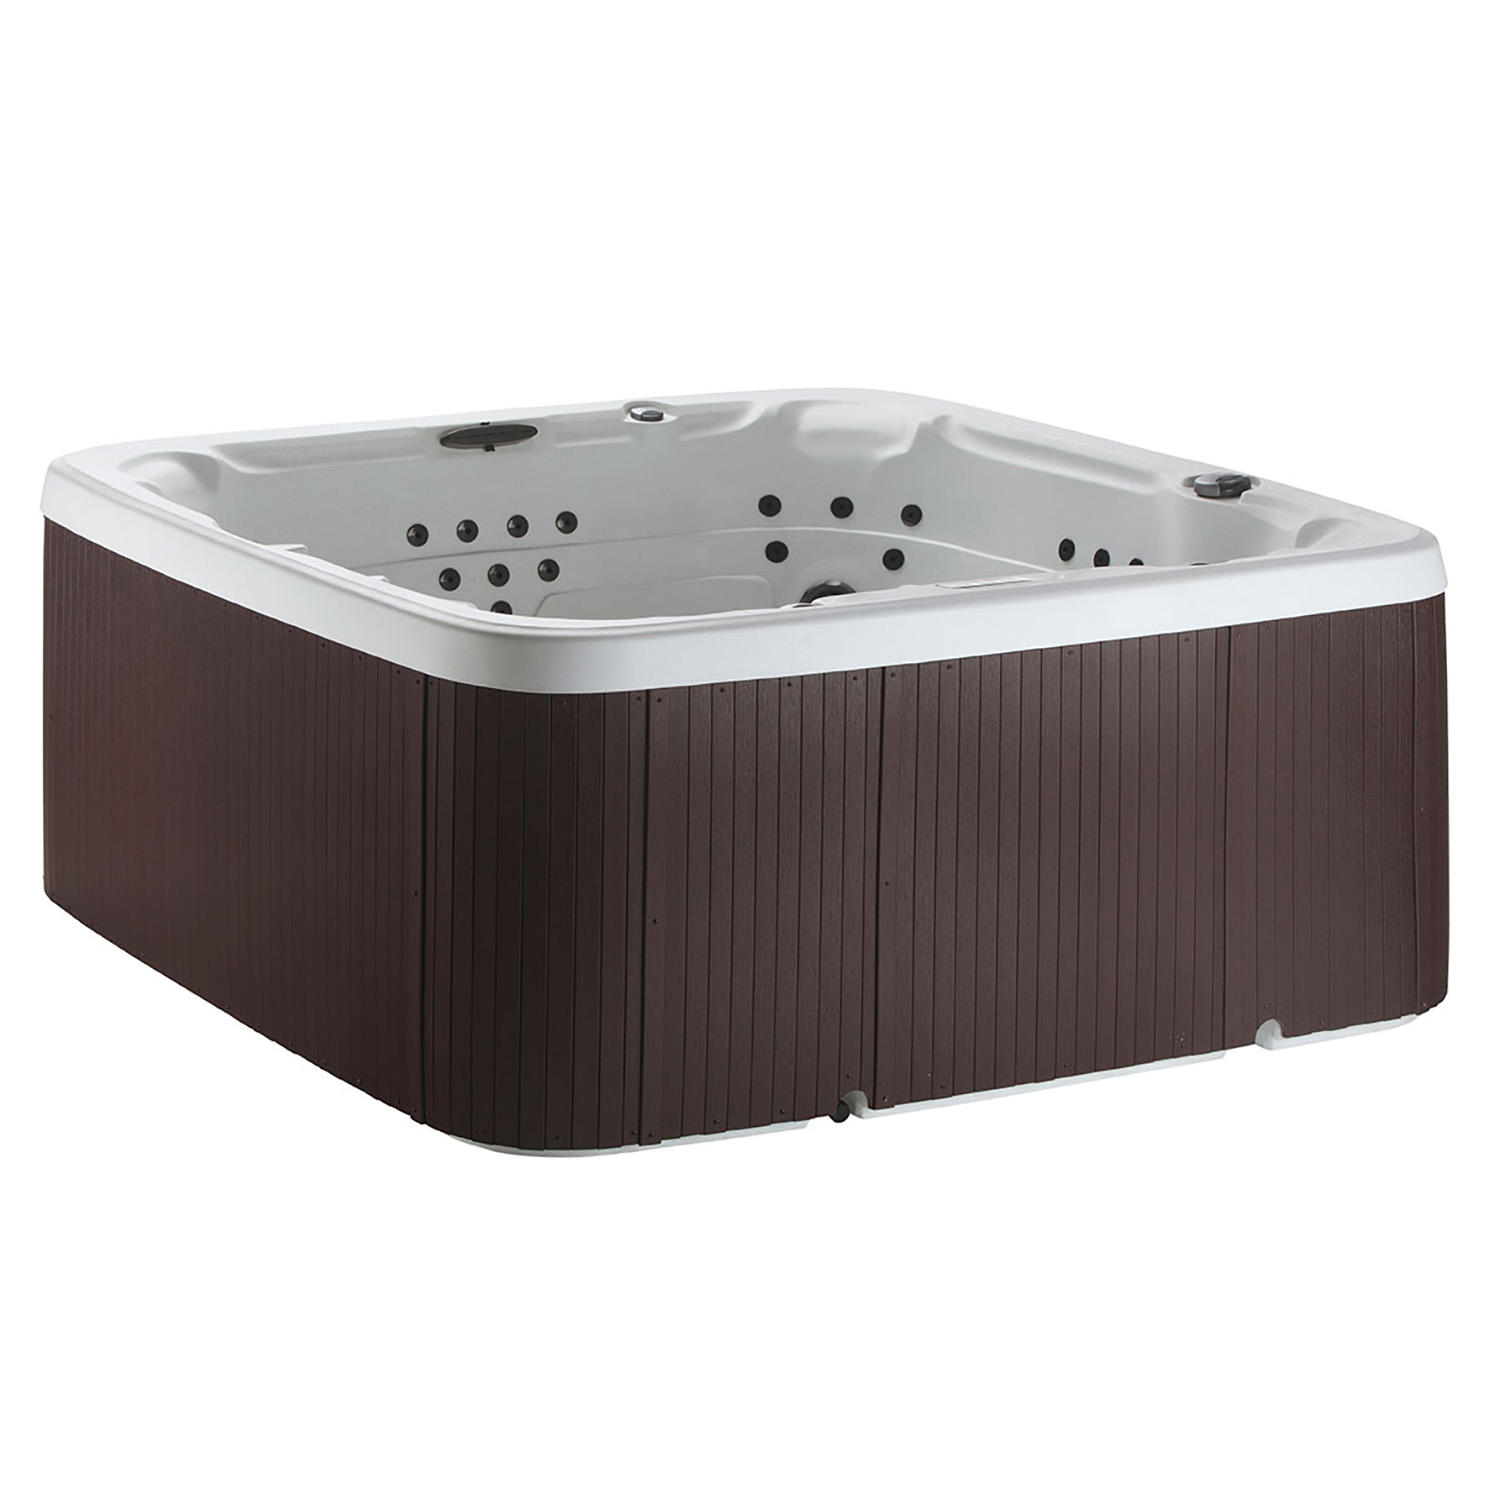 Lifesmart Spas LS700DX 90-Jet 7-Person Hot Tub Spa with Adjustable Waterfall